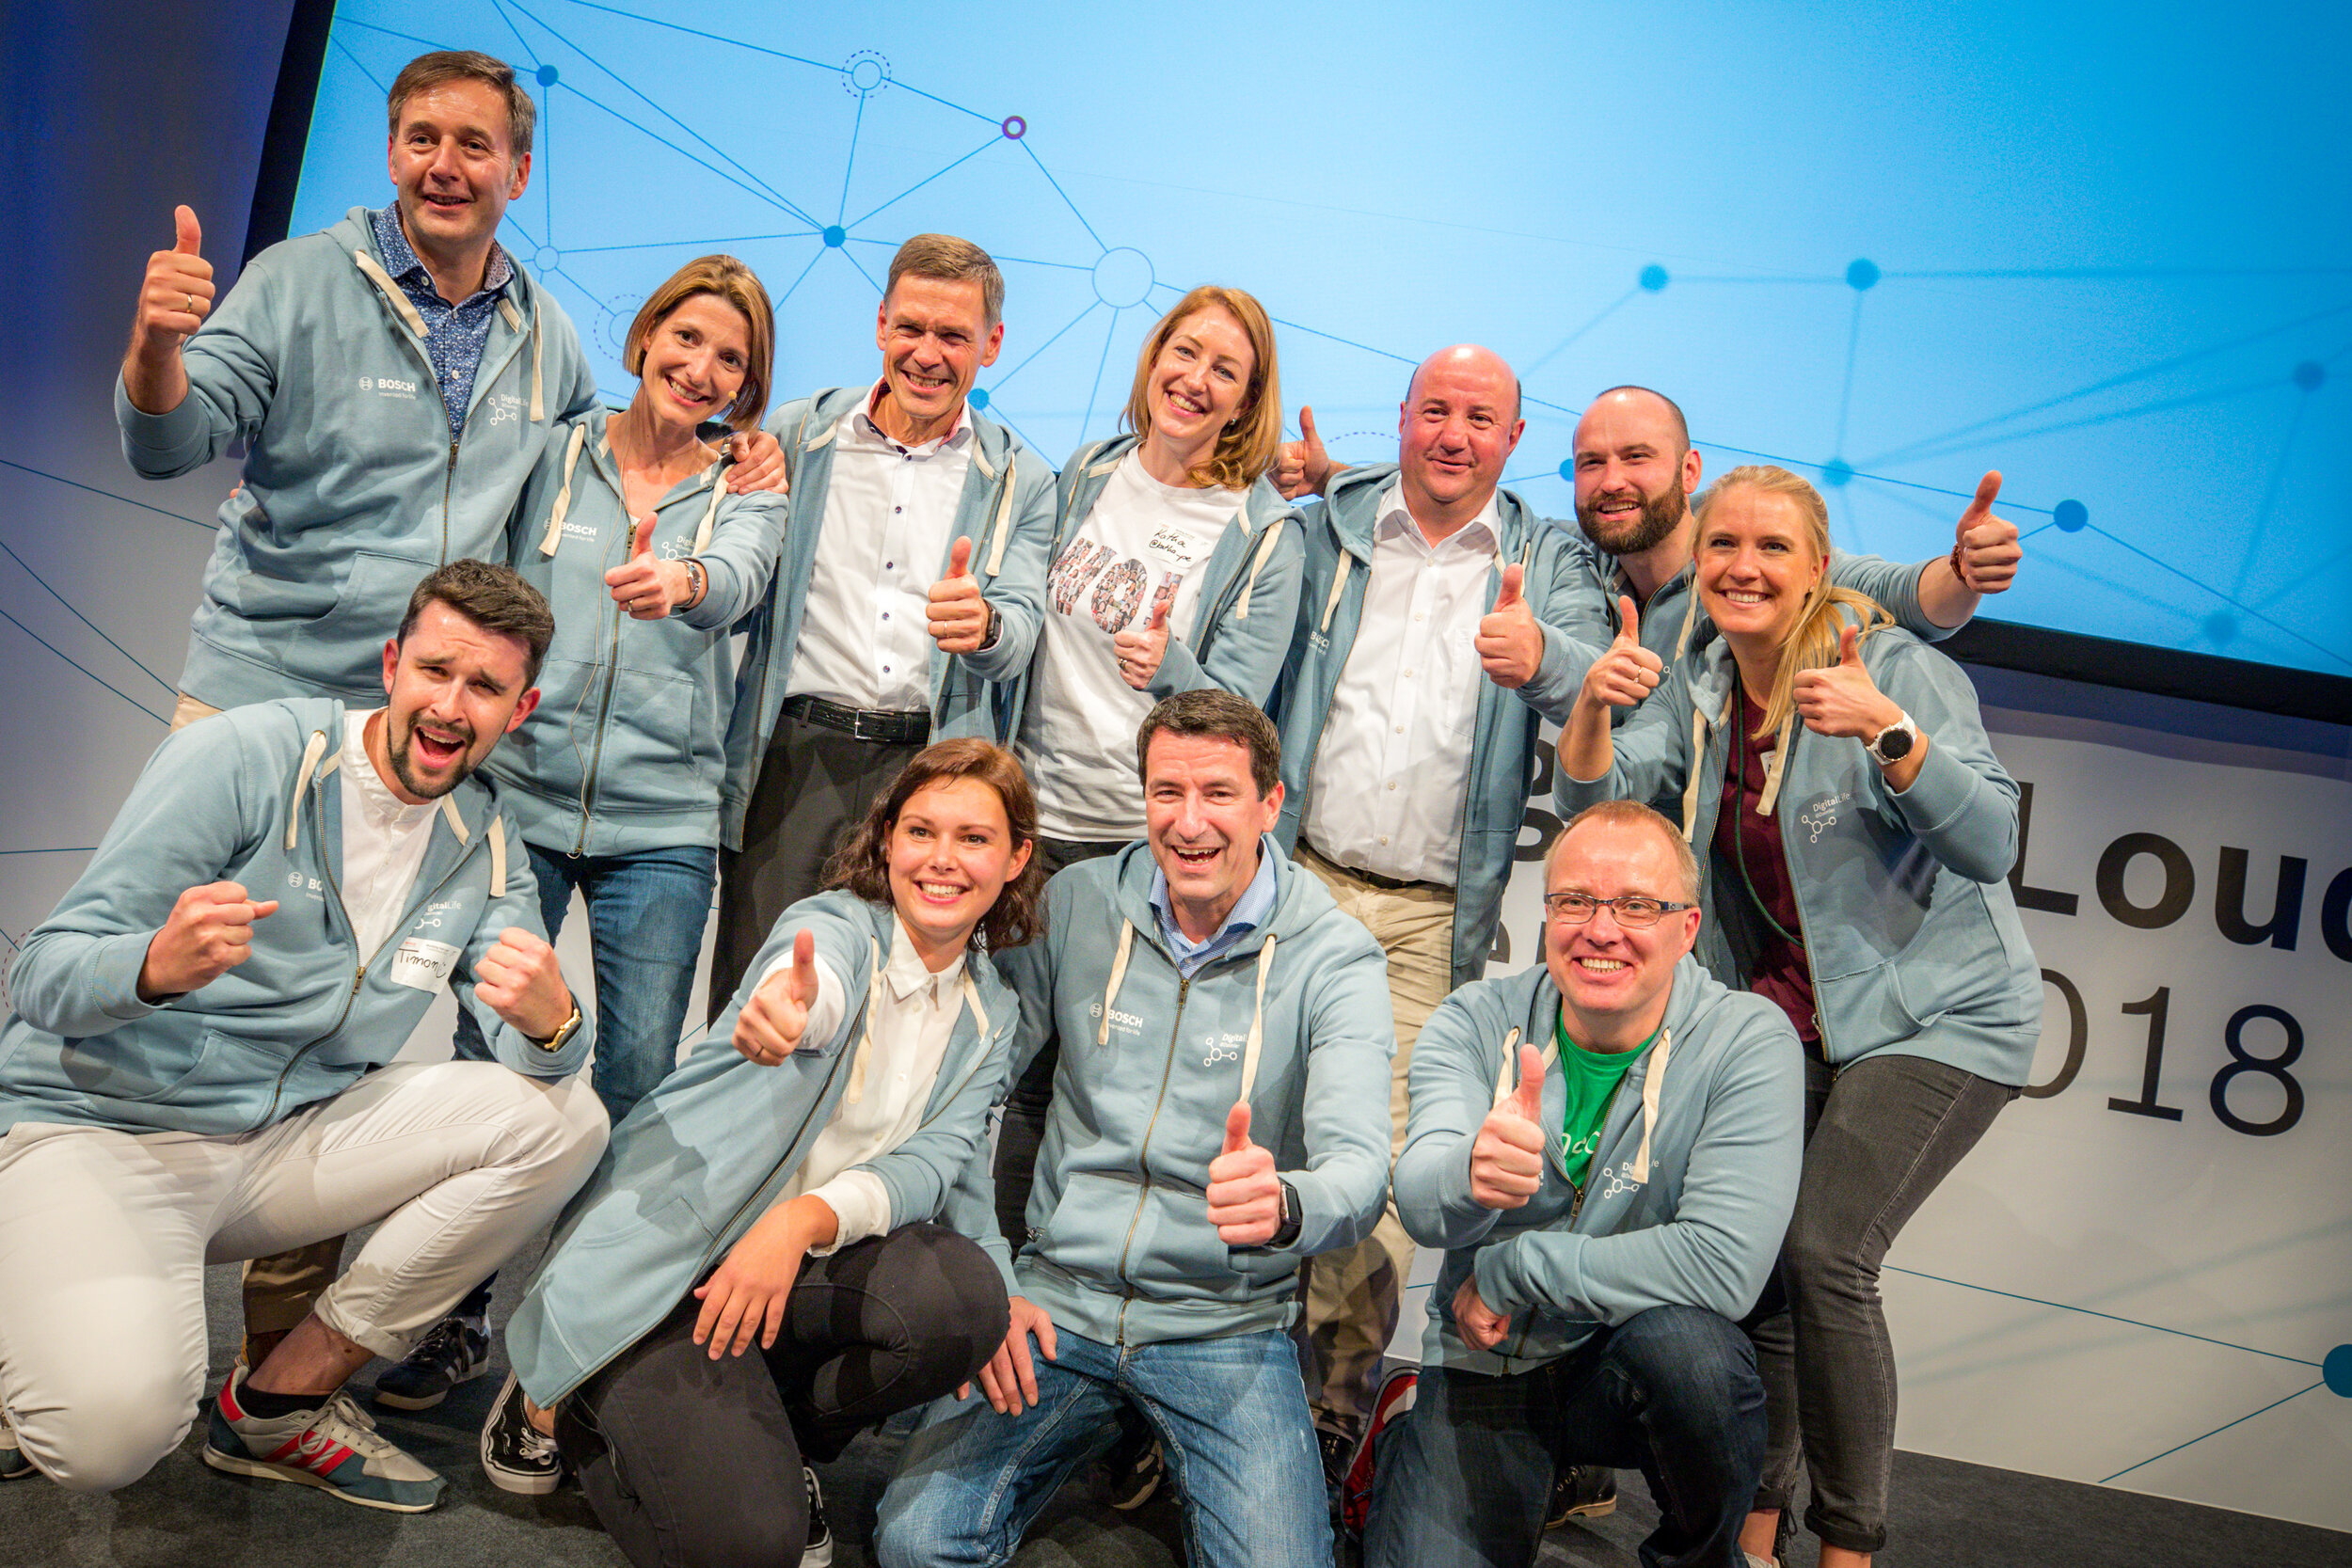 Anja is on the far right, together with board members and other managers from Bosch & Daimler, celebrating the WOL Conference she co-organized.